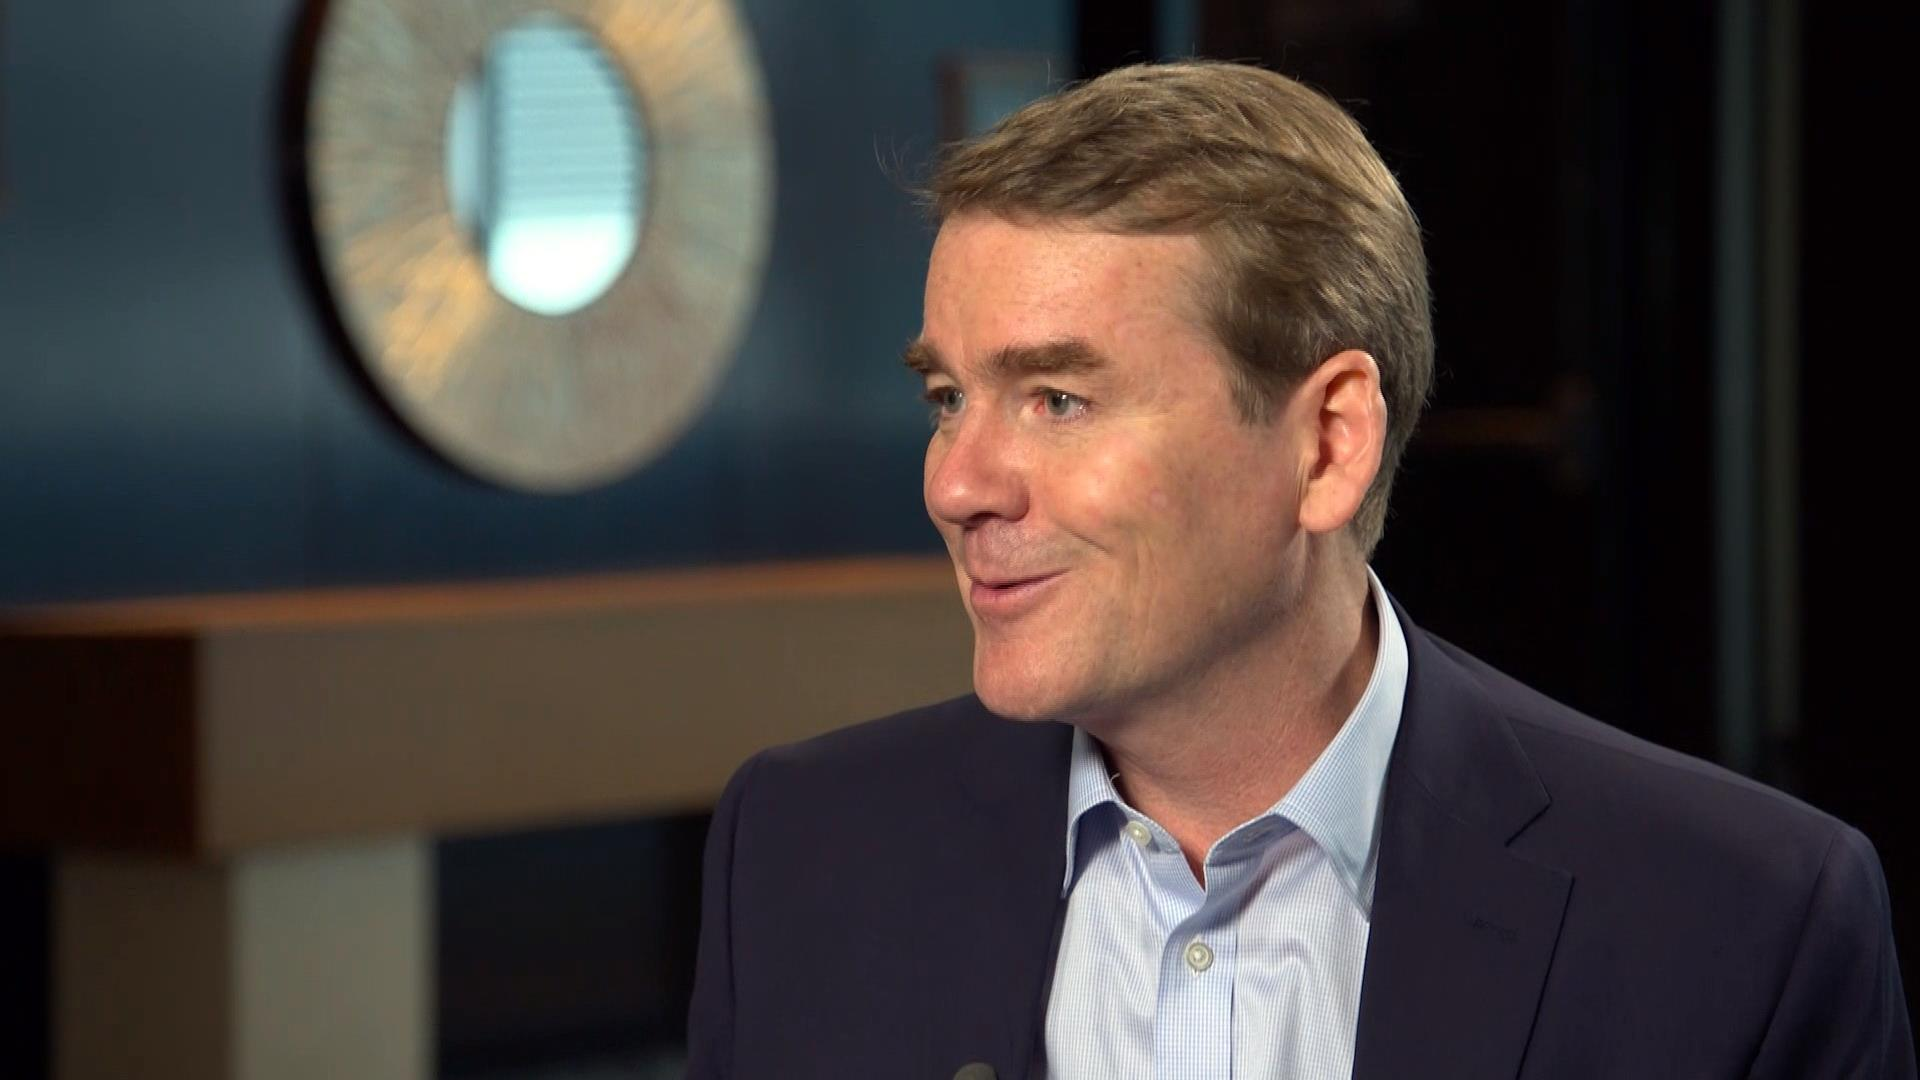 Sen. Bennet: The Washington Biden talks about with nostalgia no longer exists